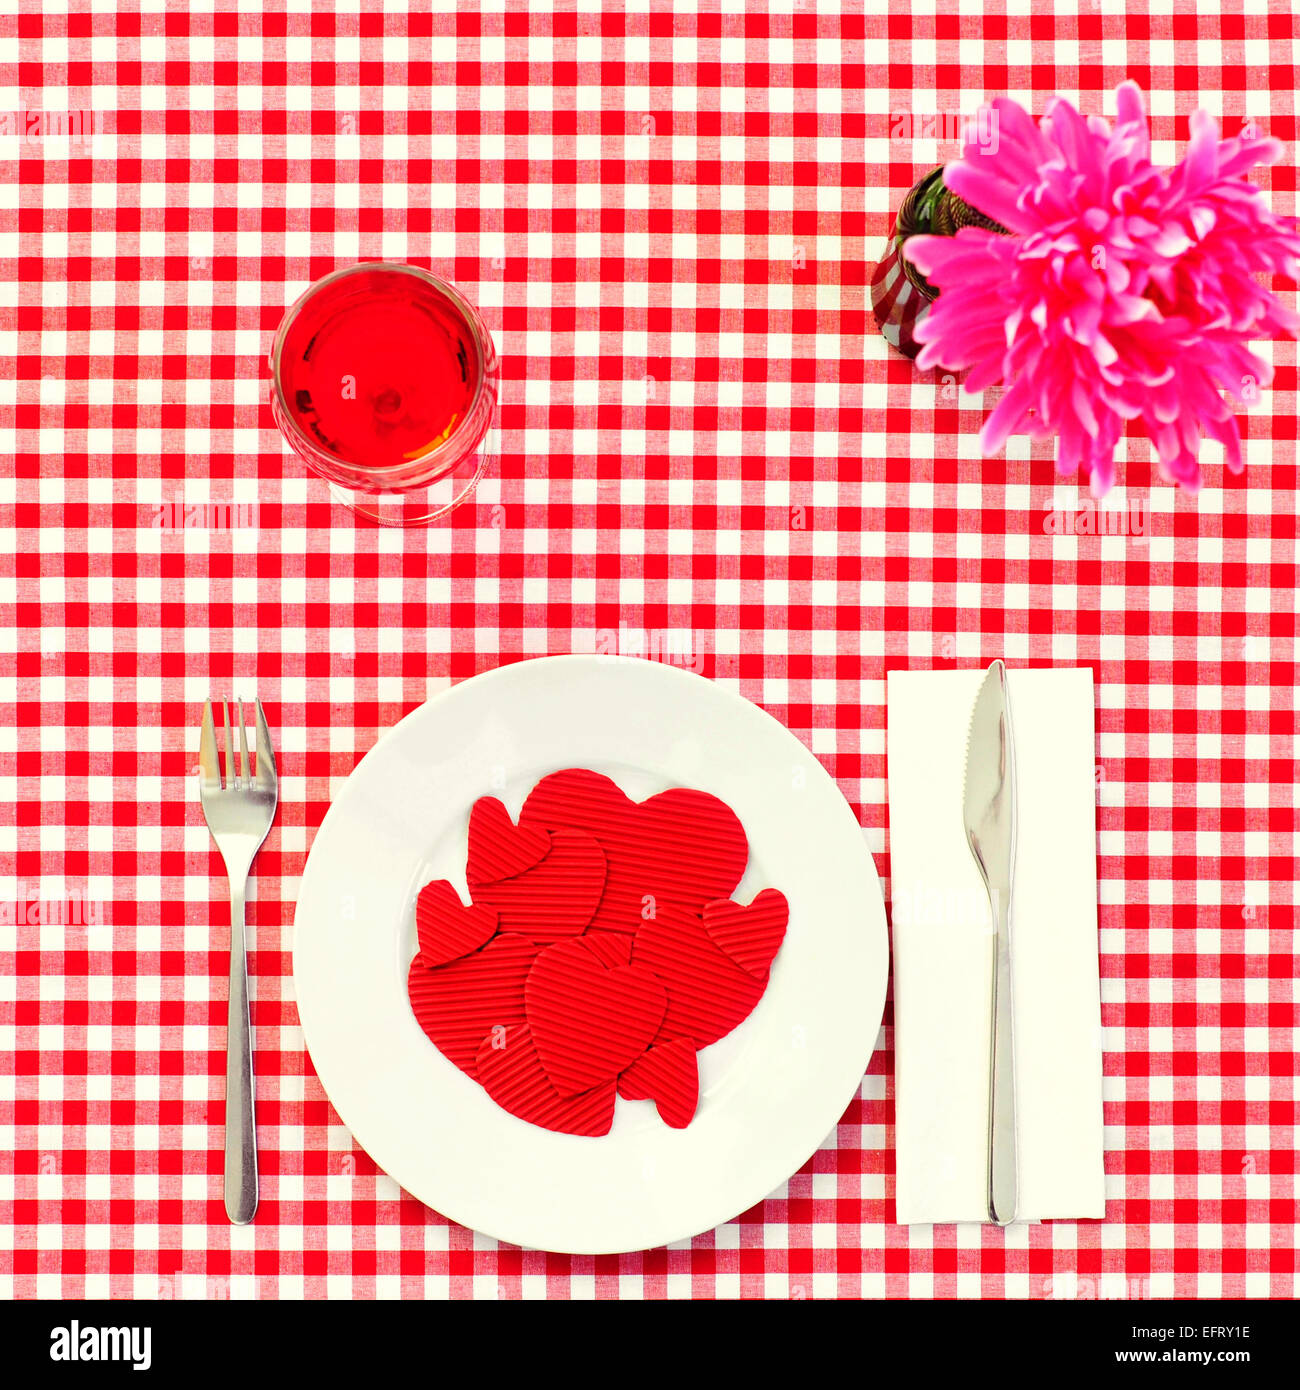 high-angle shot of a plate full of red hearts with different size on a set table with a checkered red and white - Stock Image